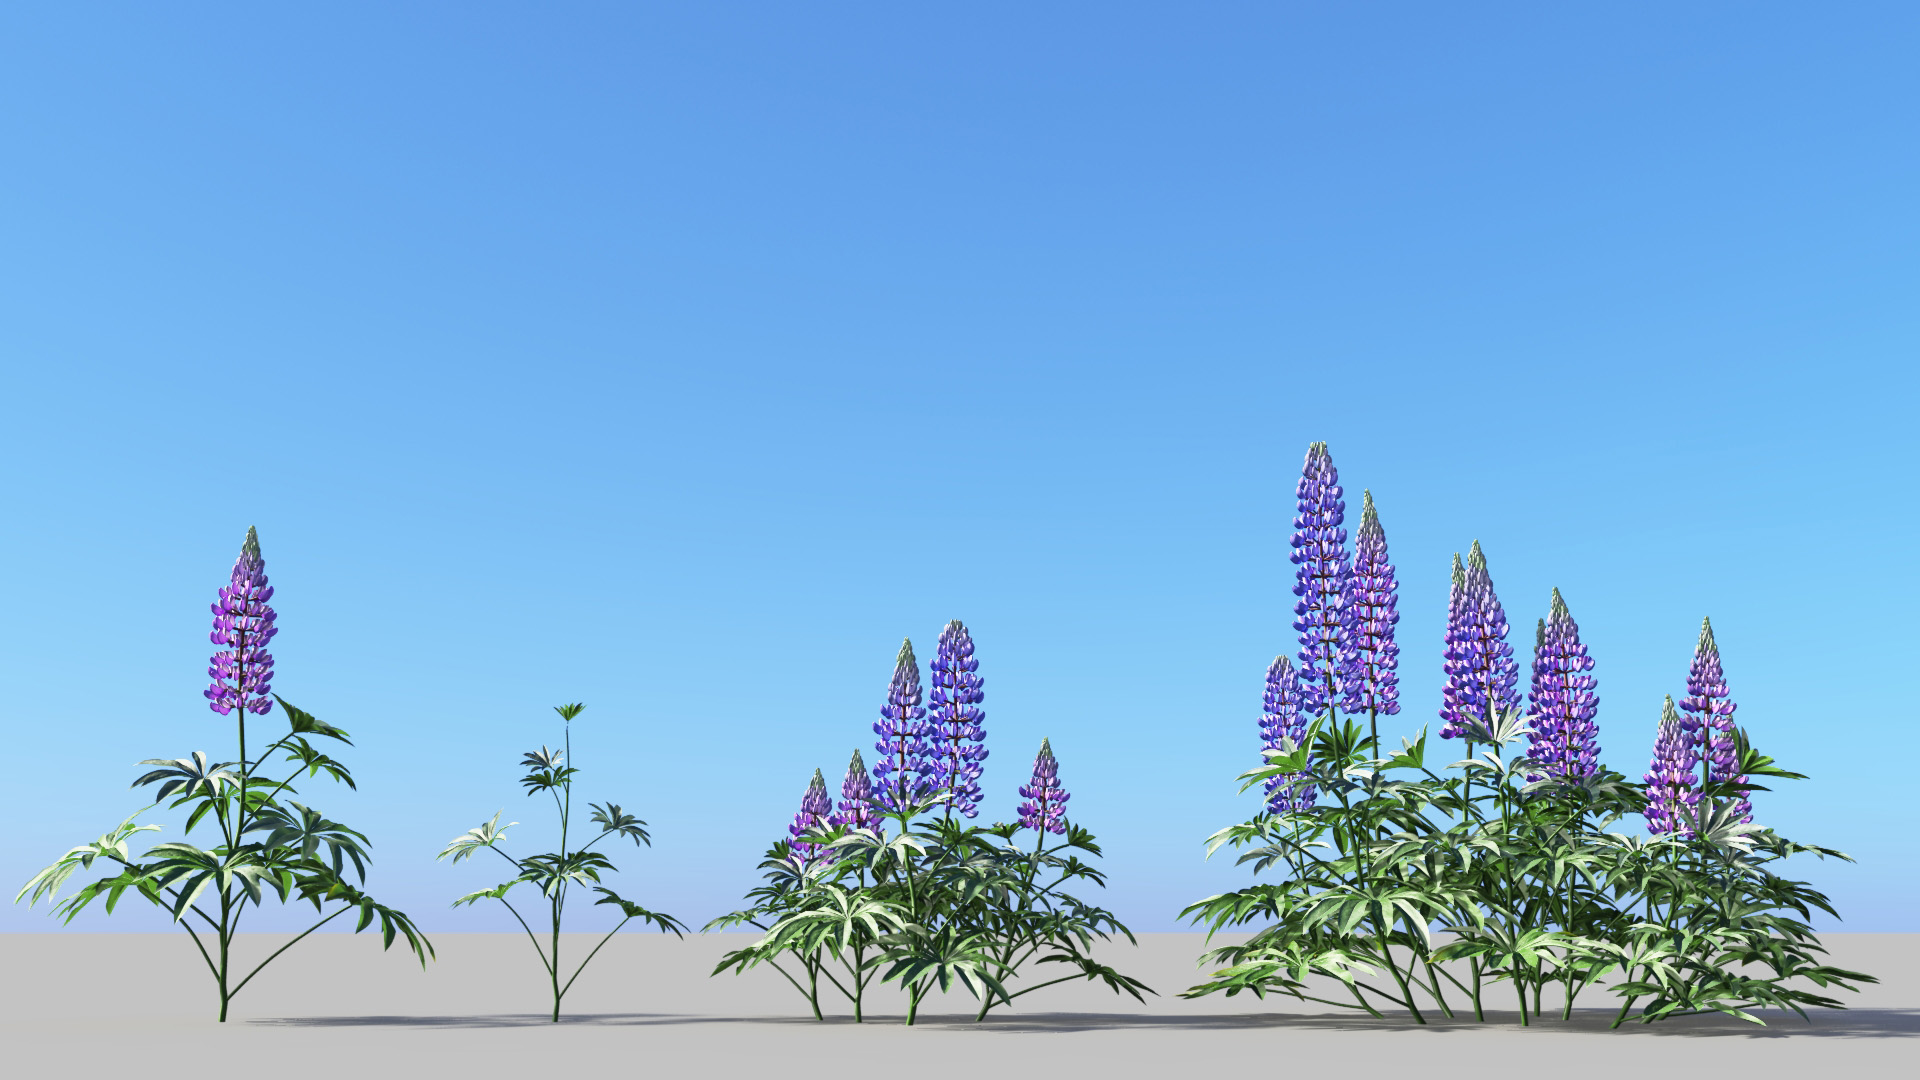 3D model of the Large-leaved lupine Lupinus polyphyllus